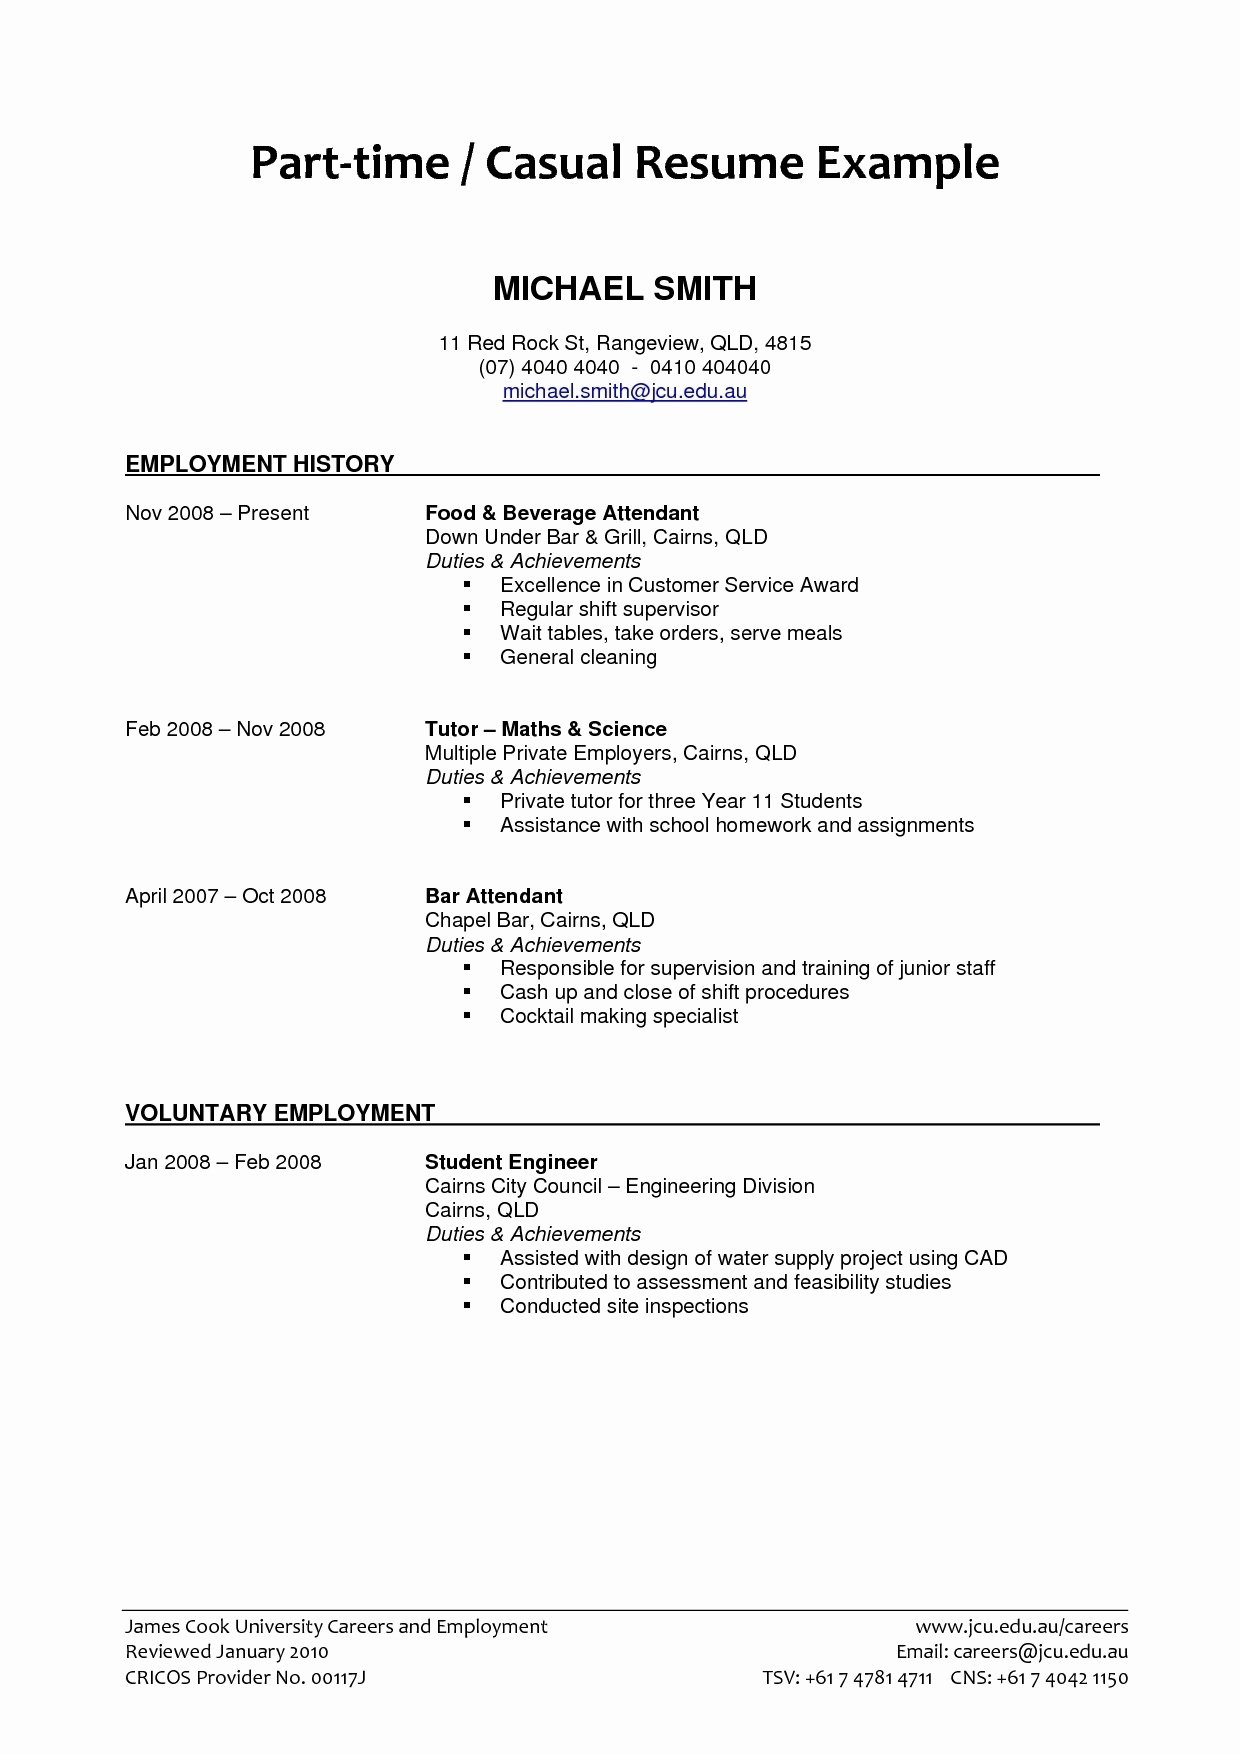 10 Trendy Ideas For Part Time Jobs job resume format pdf download inspirational download how to write a 2020